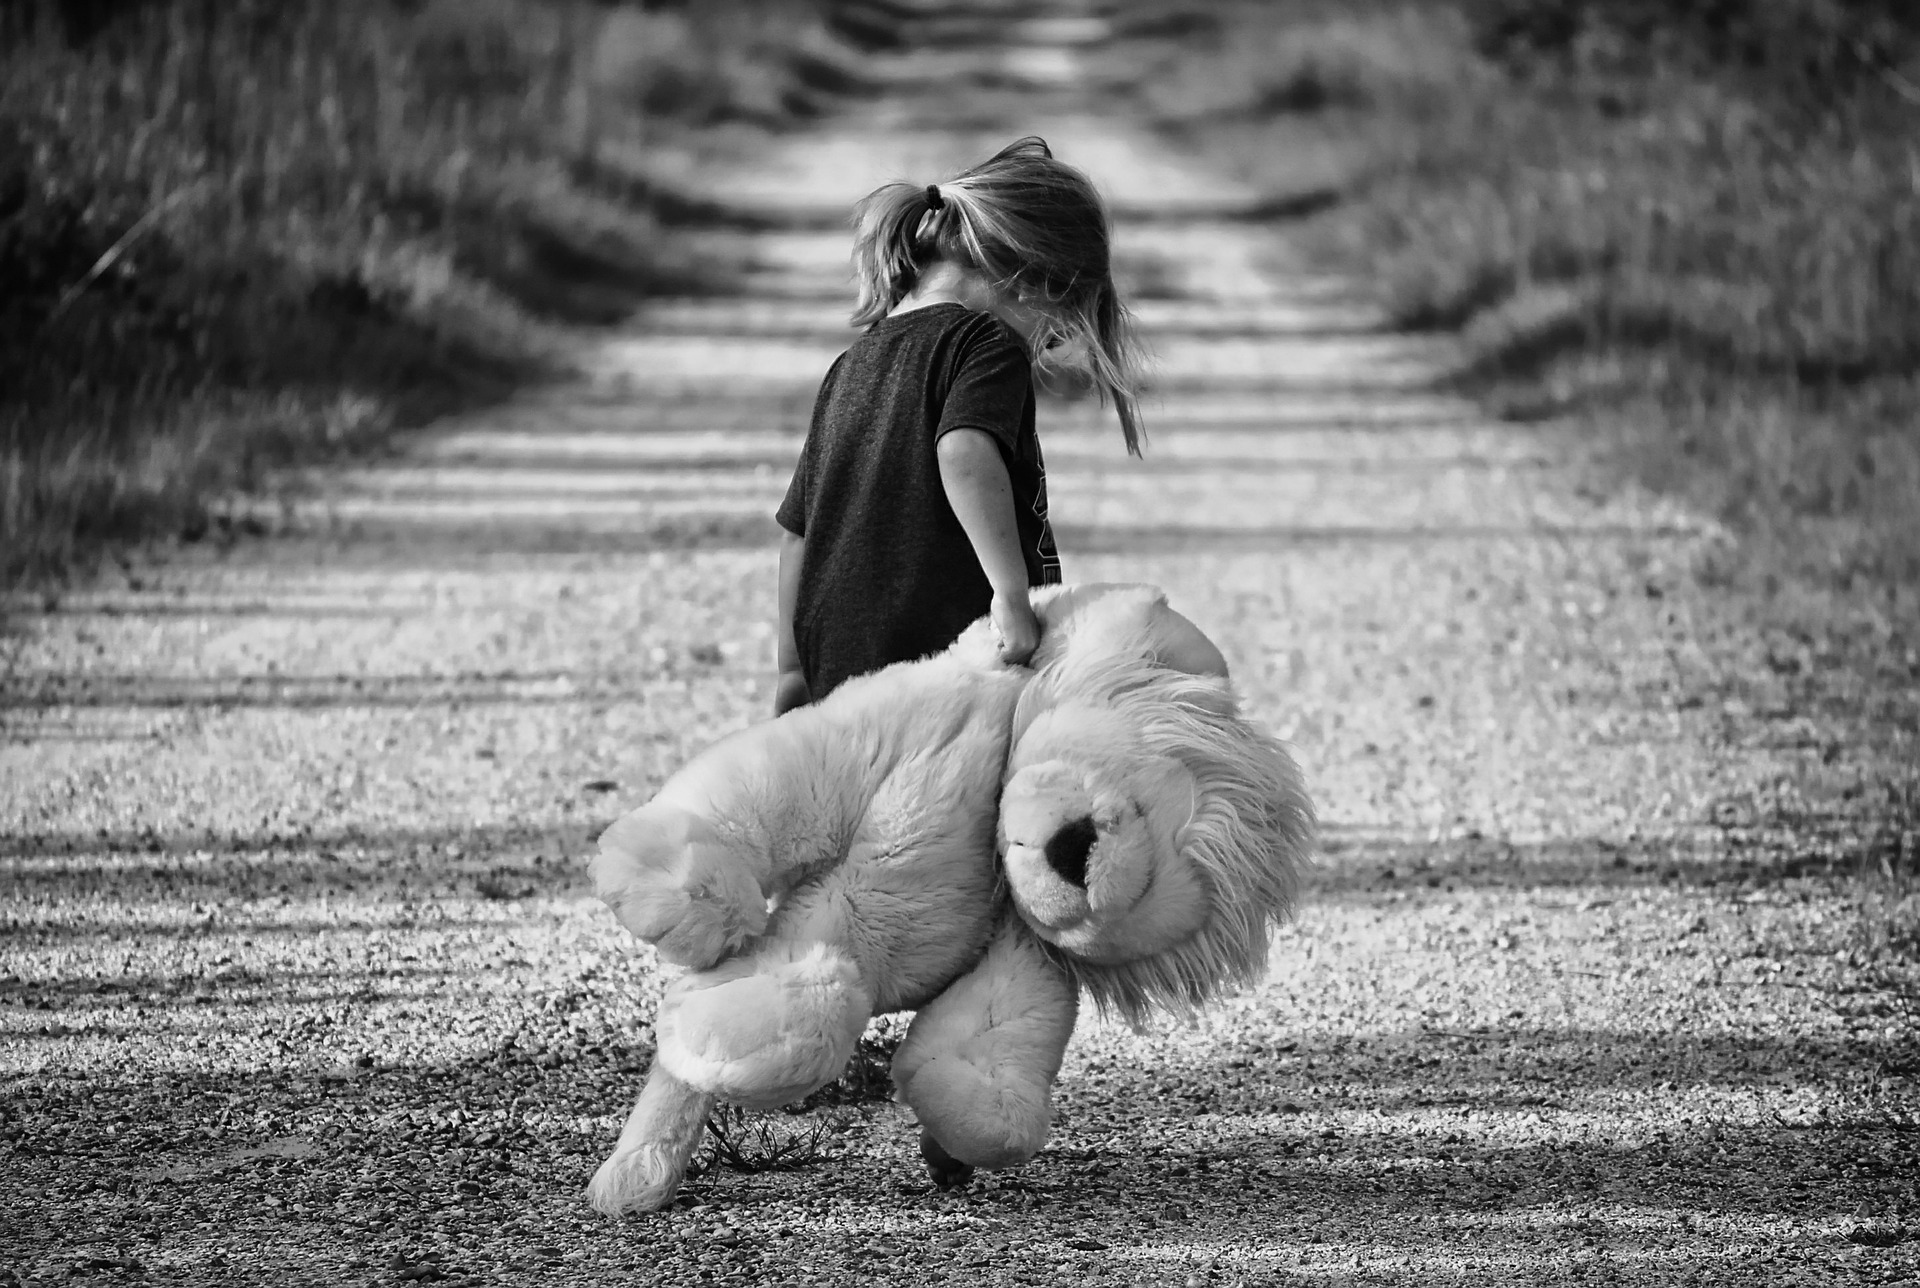 child abandonment in Arizona - girl alone holding stuffed animal